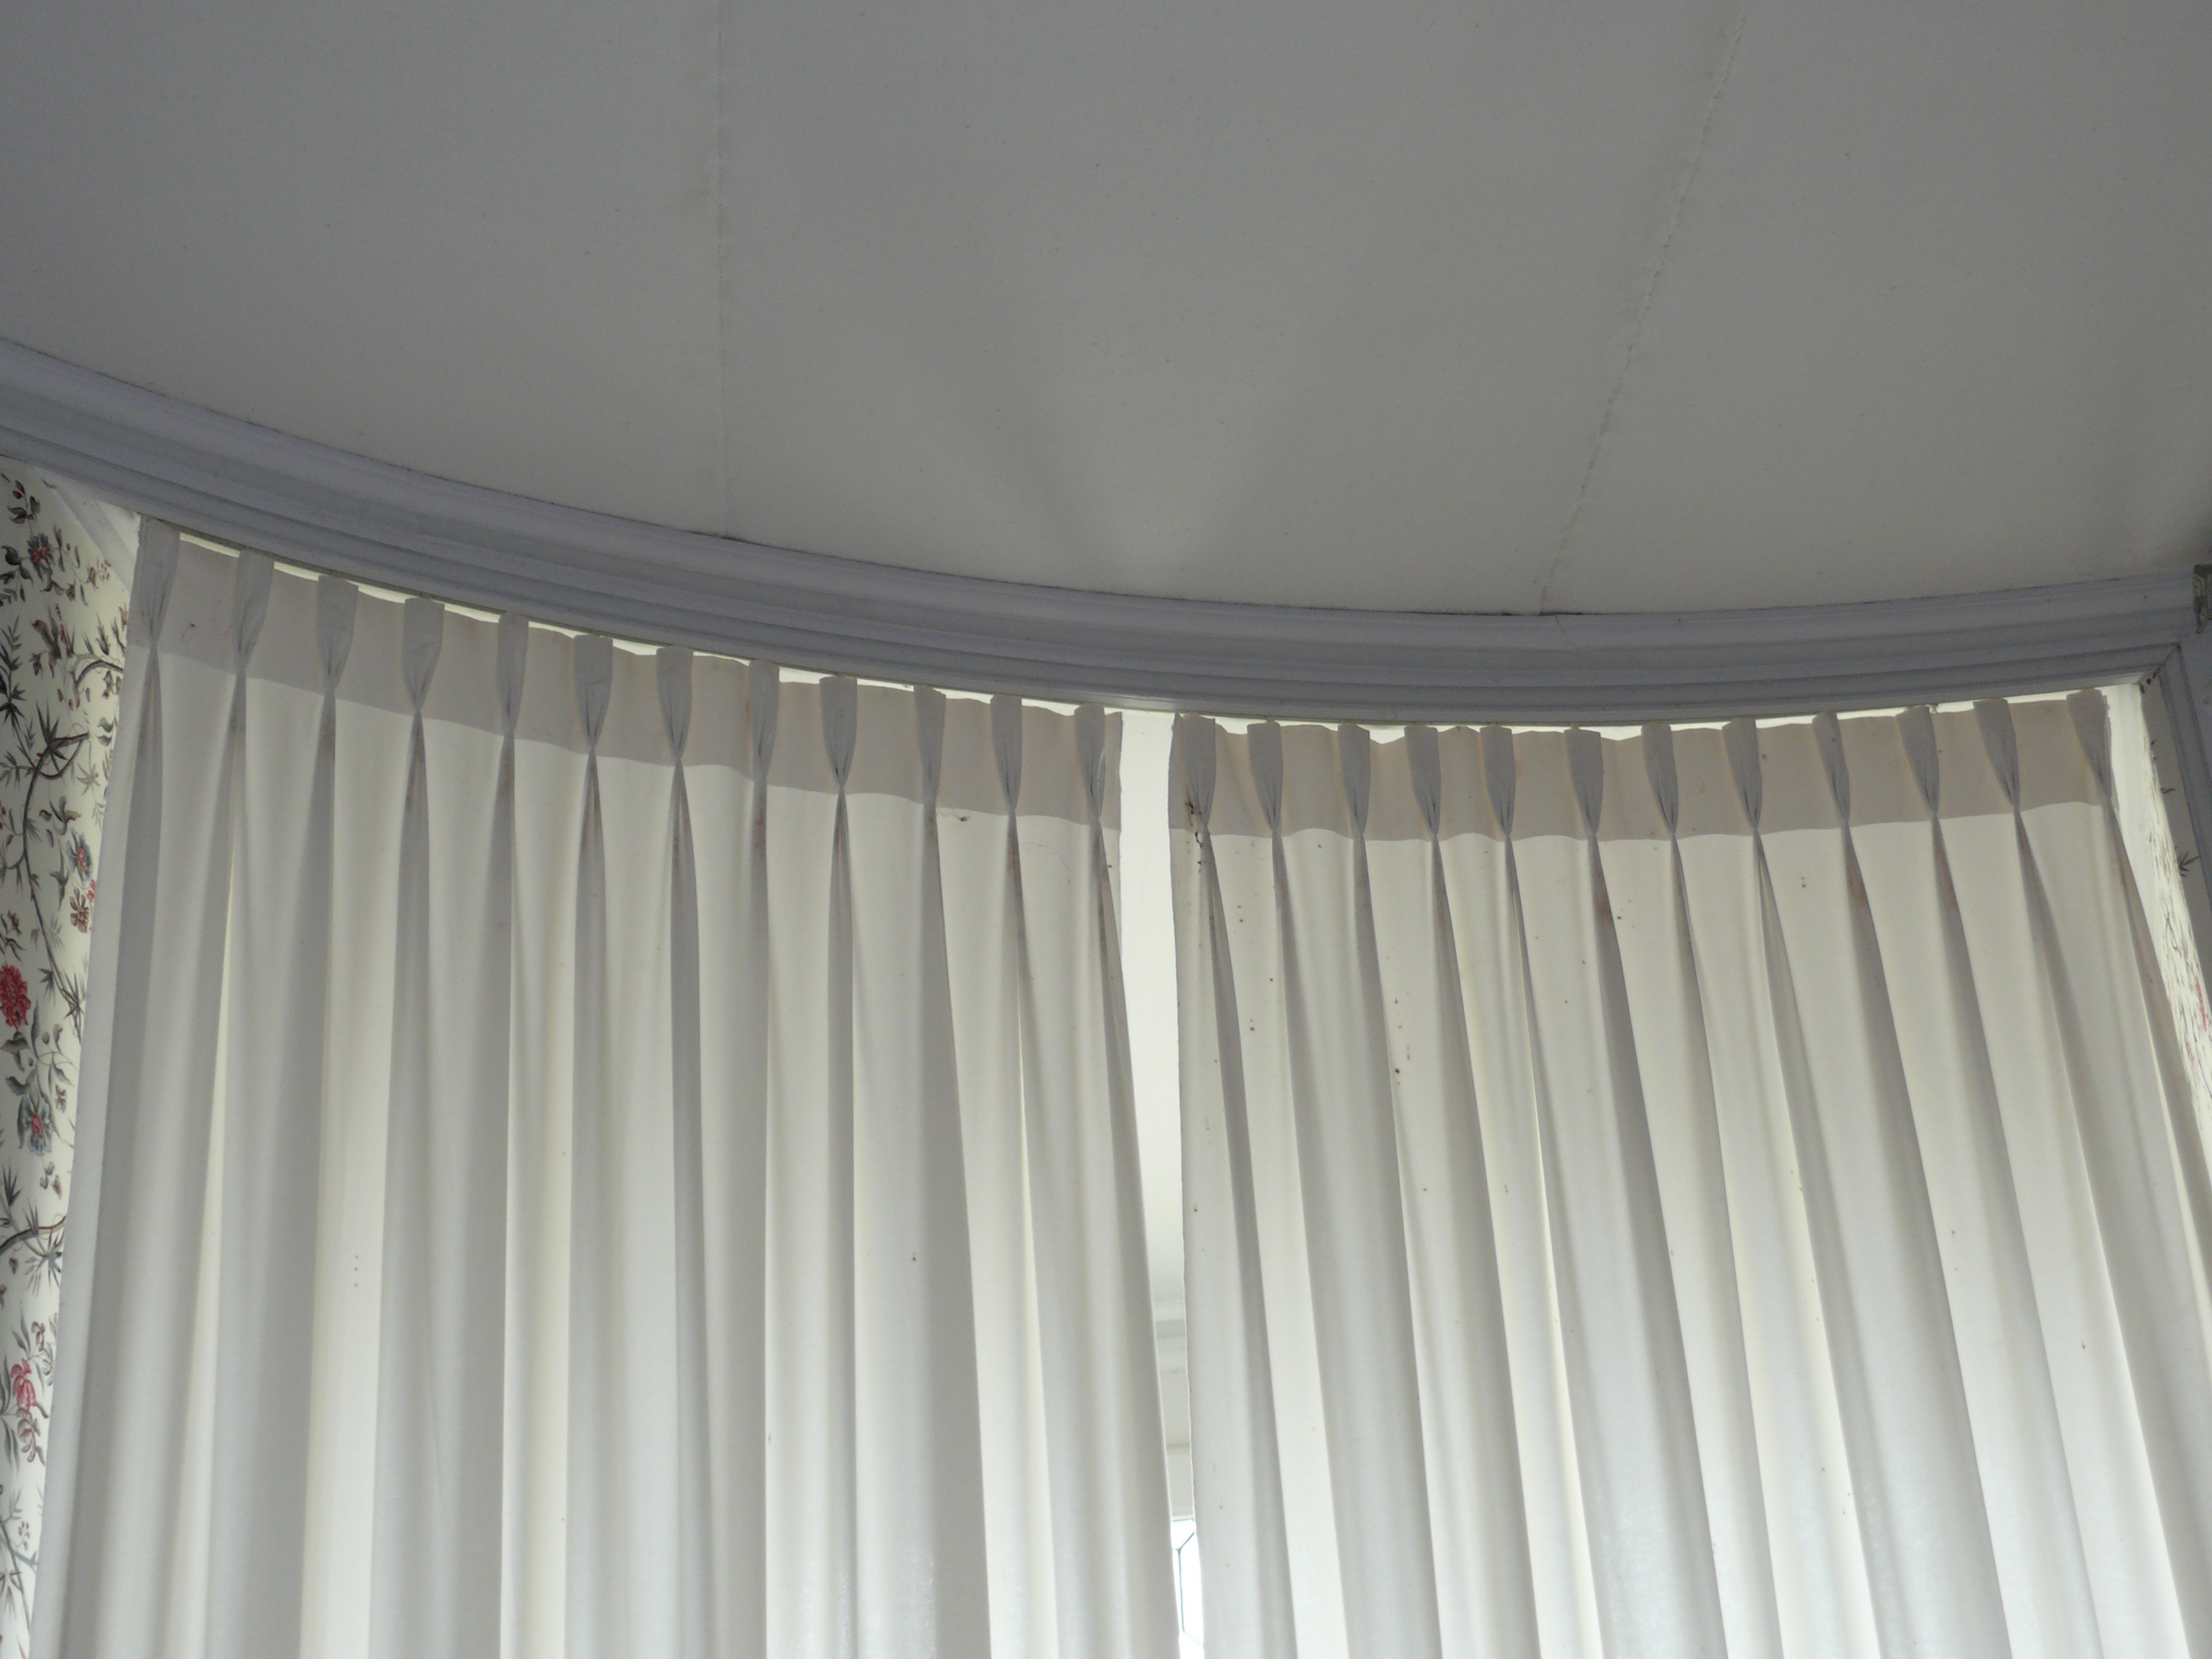 History Of Styles Window Treatments L Essenziale Intended For Curtains Pleated Style (Image 10 of 15)